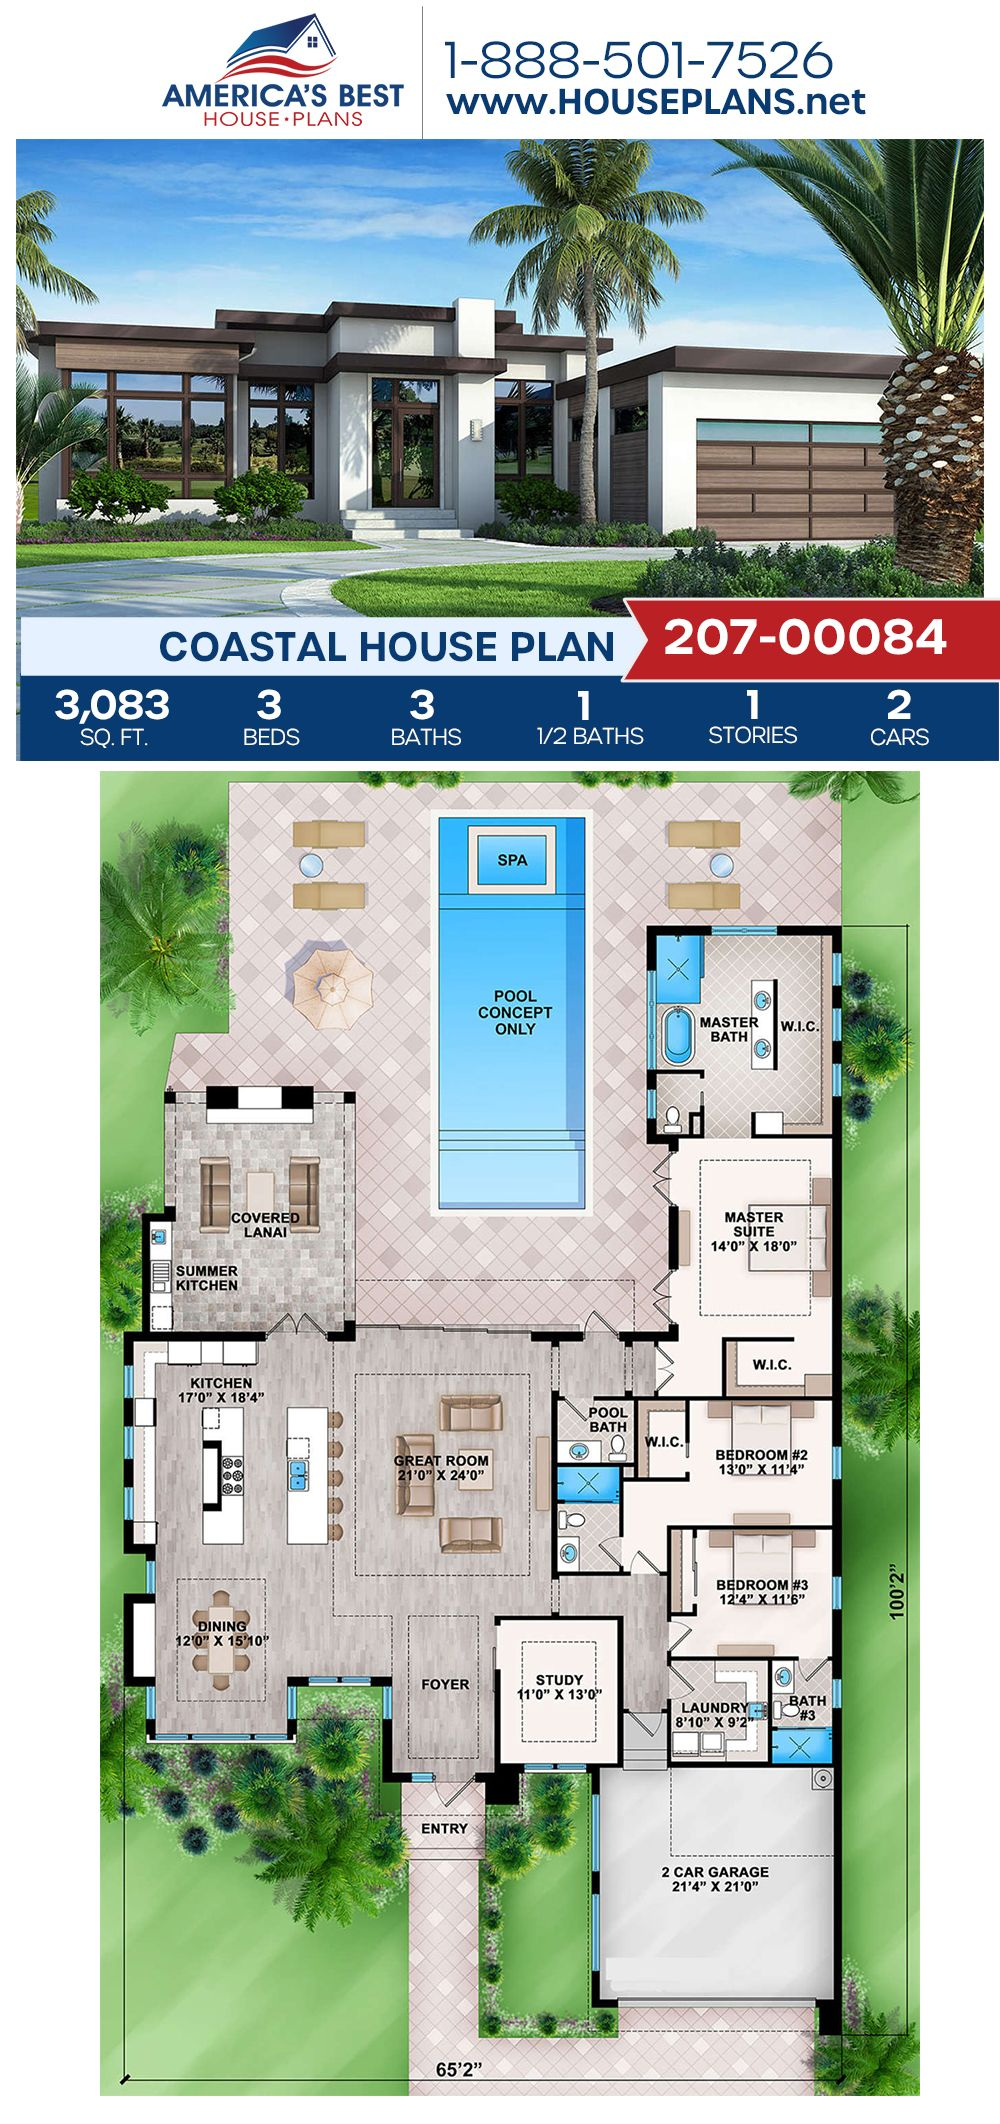 House Plan 207 00084 Modern Plan 3 083 Square Feet 3 Bedrooms 3 5 Bathrooms In 2020 Coastal House Plans Mansion Floor Plan Modern House Floor Plans